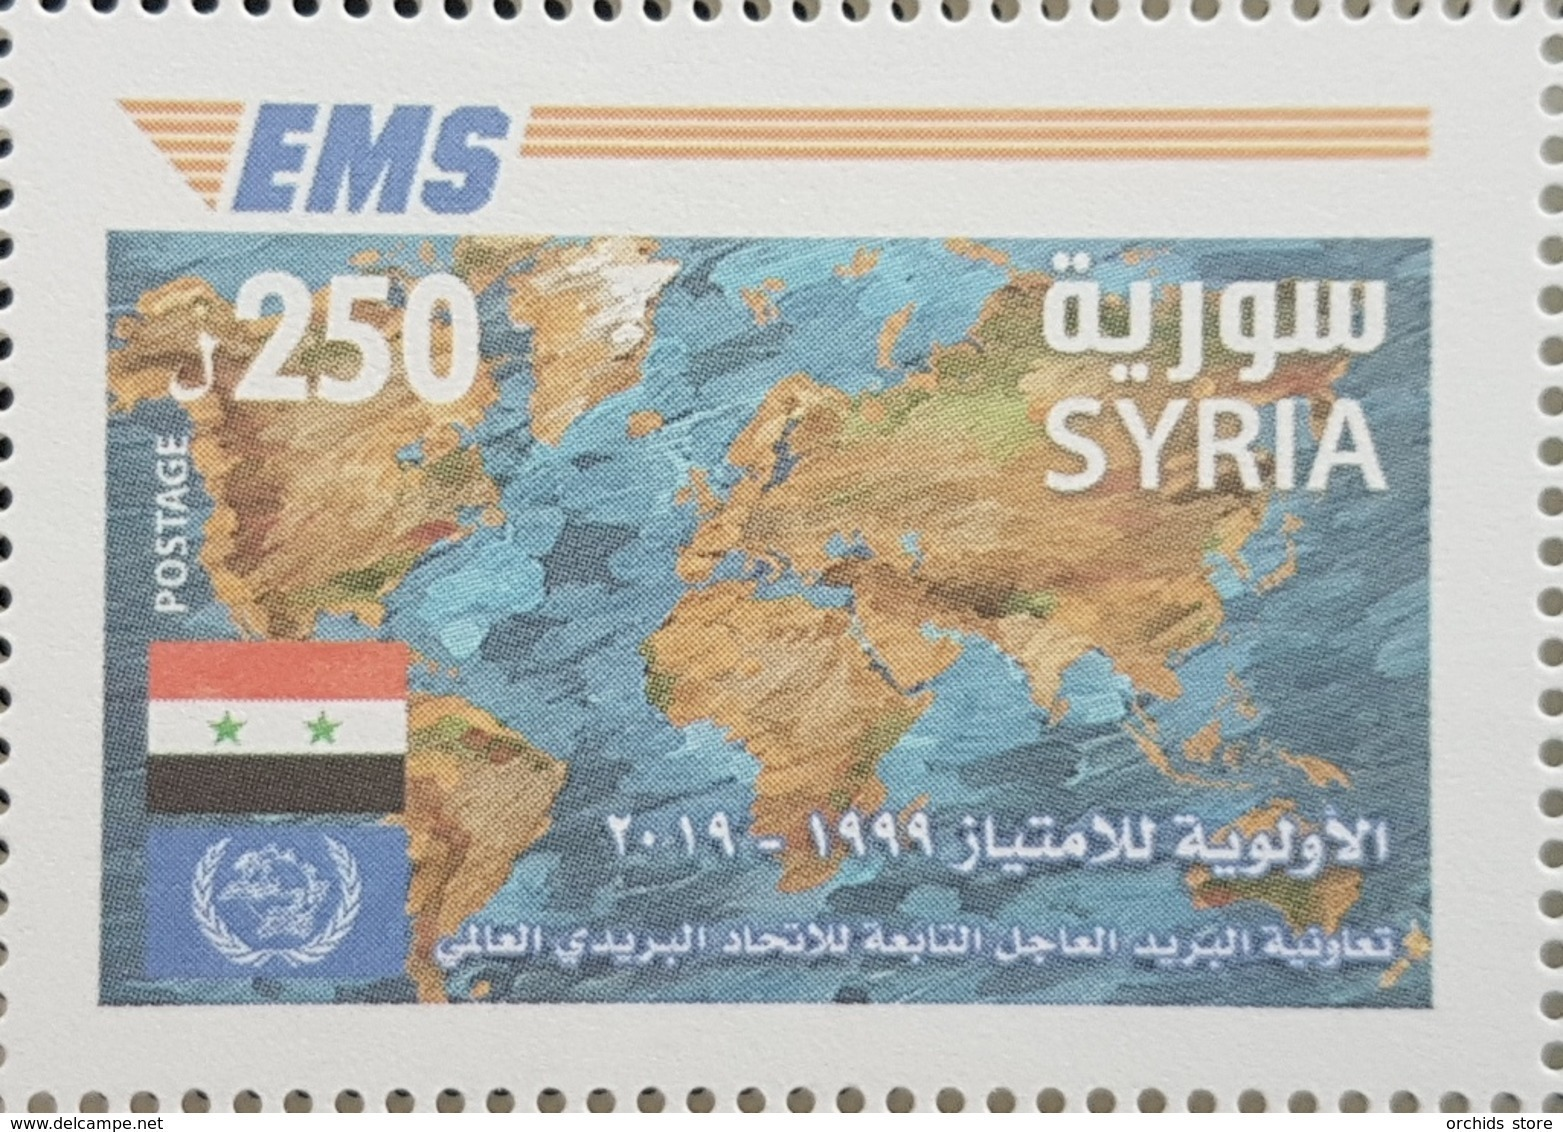 Syria New 2019 MNH Stamp - EMS - Express Mail Service - Worldwide Joint Issue - Syria